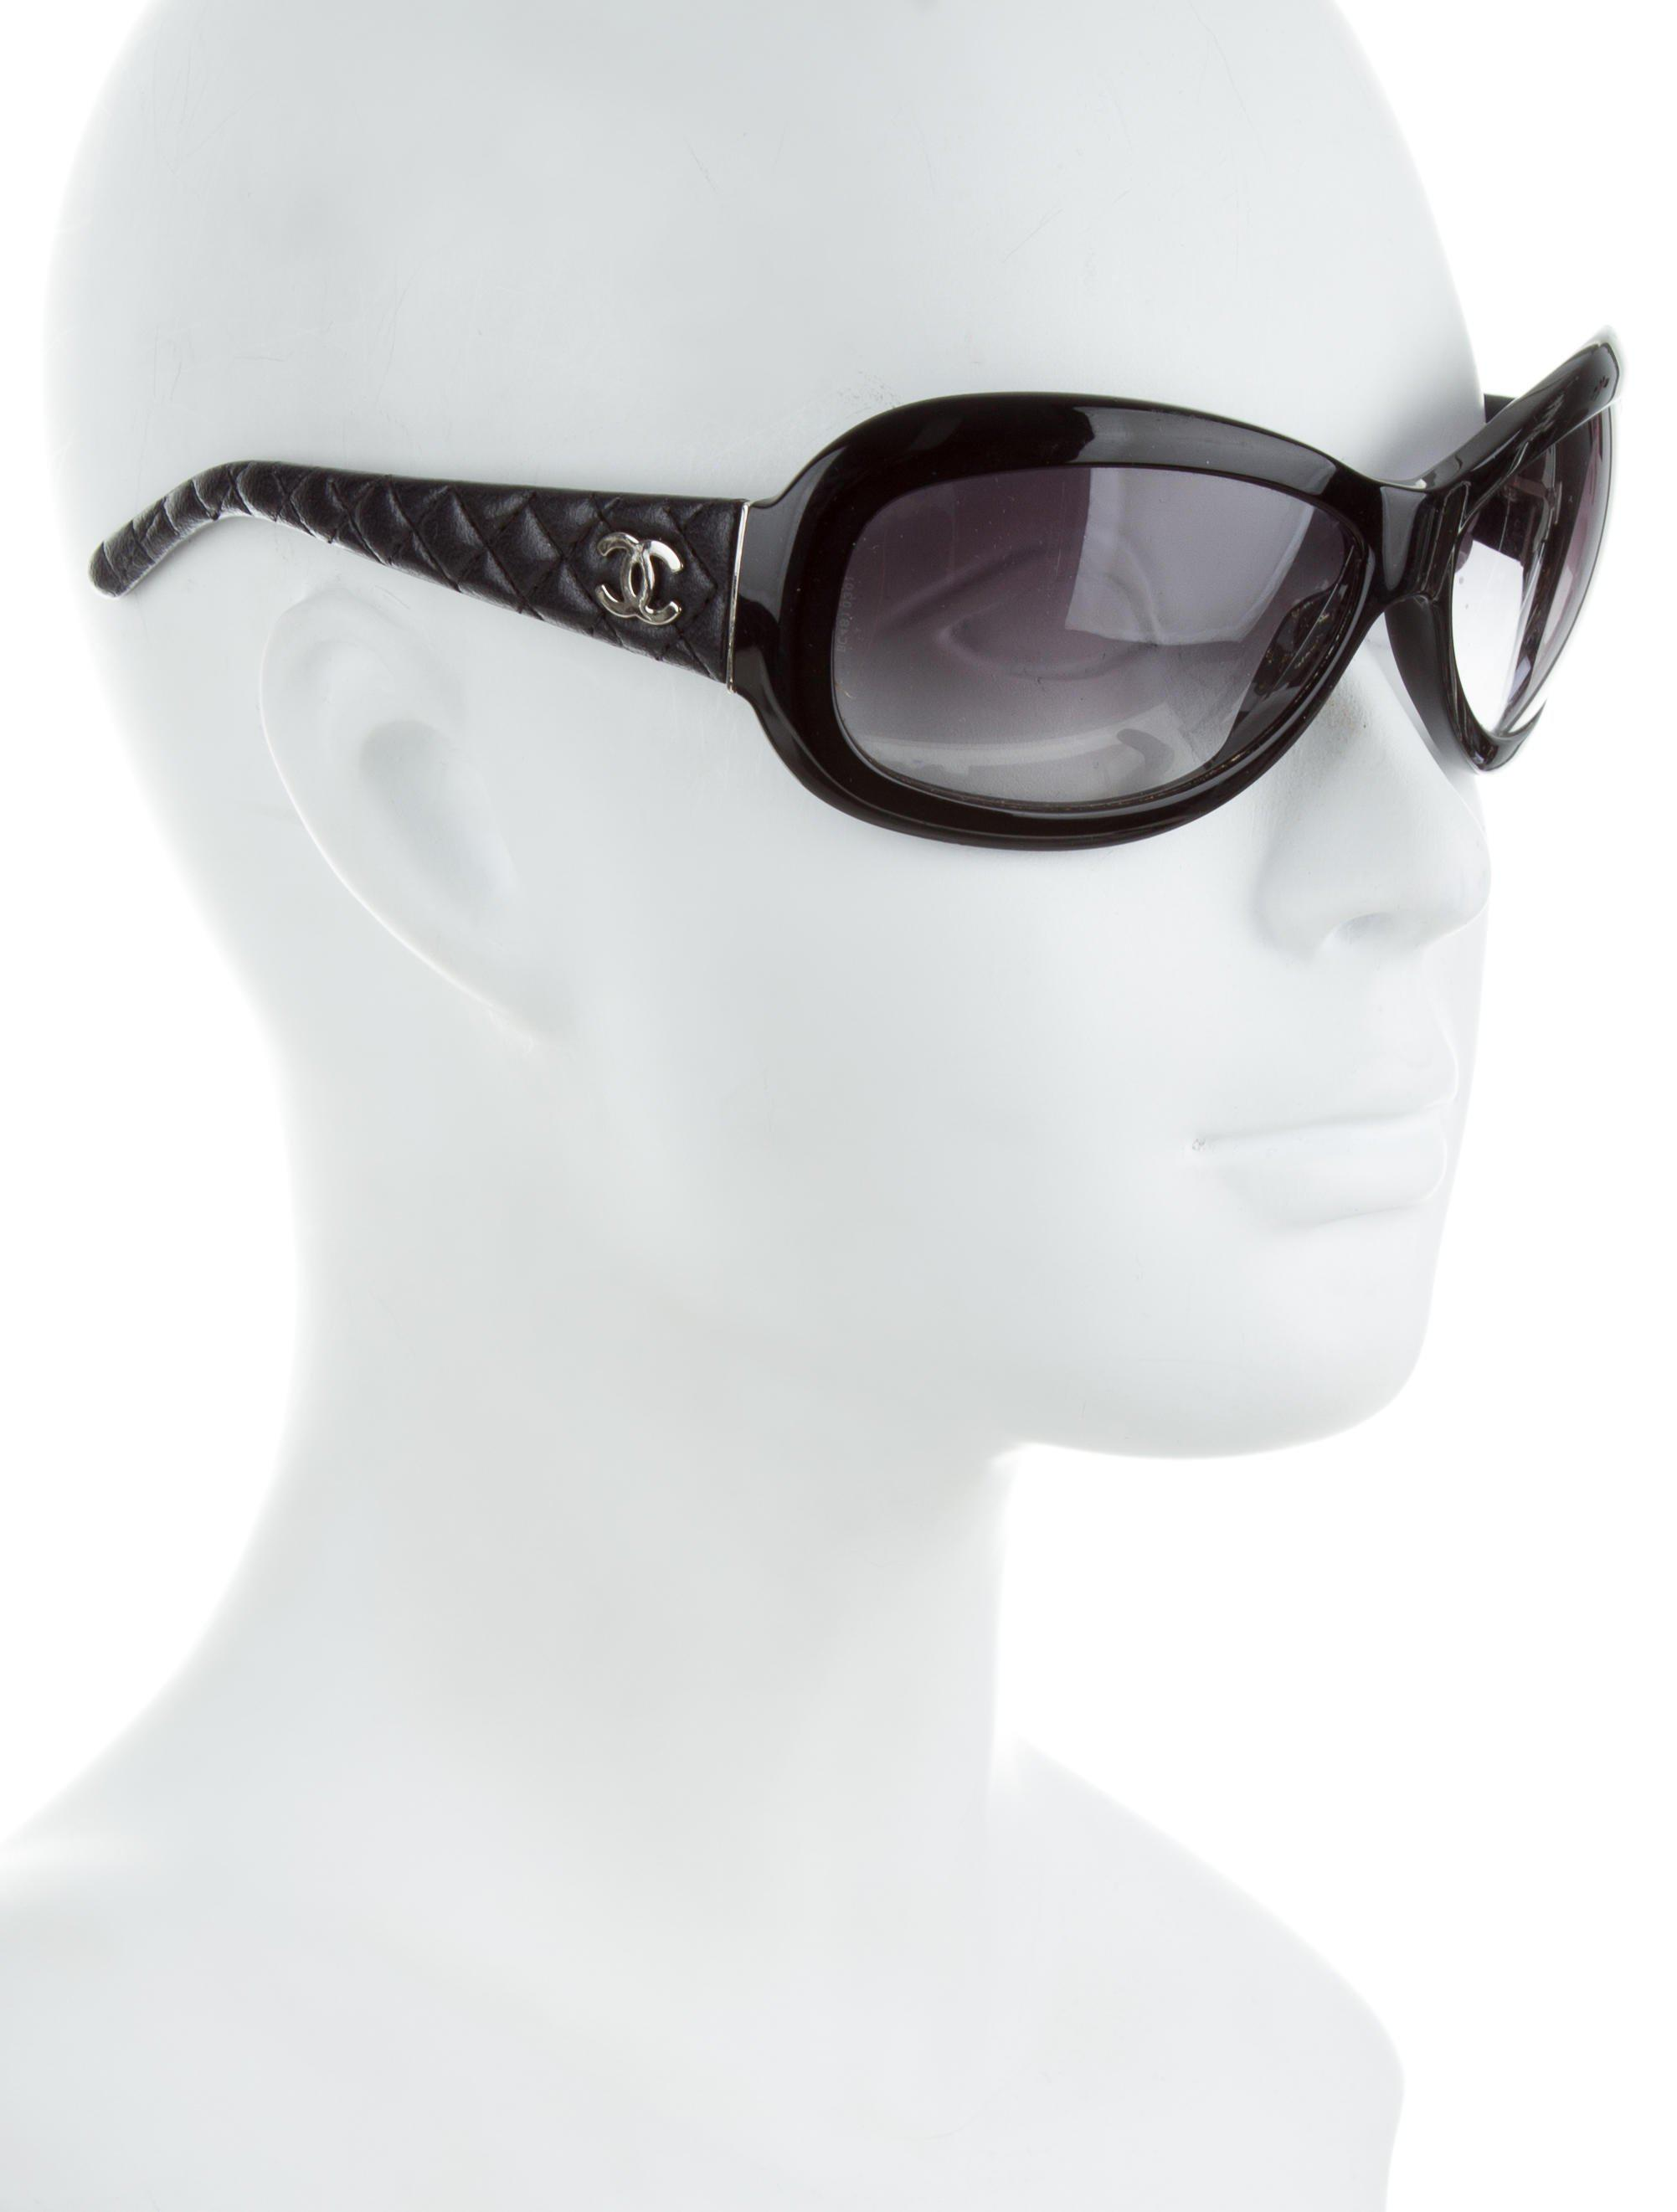 b10c25d90f9 Lyst - Chanel Quilted Cc Sunglasses Black in Metallic